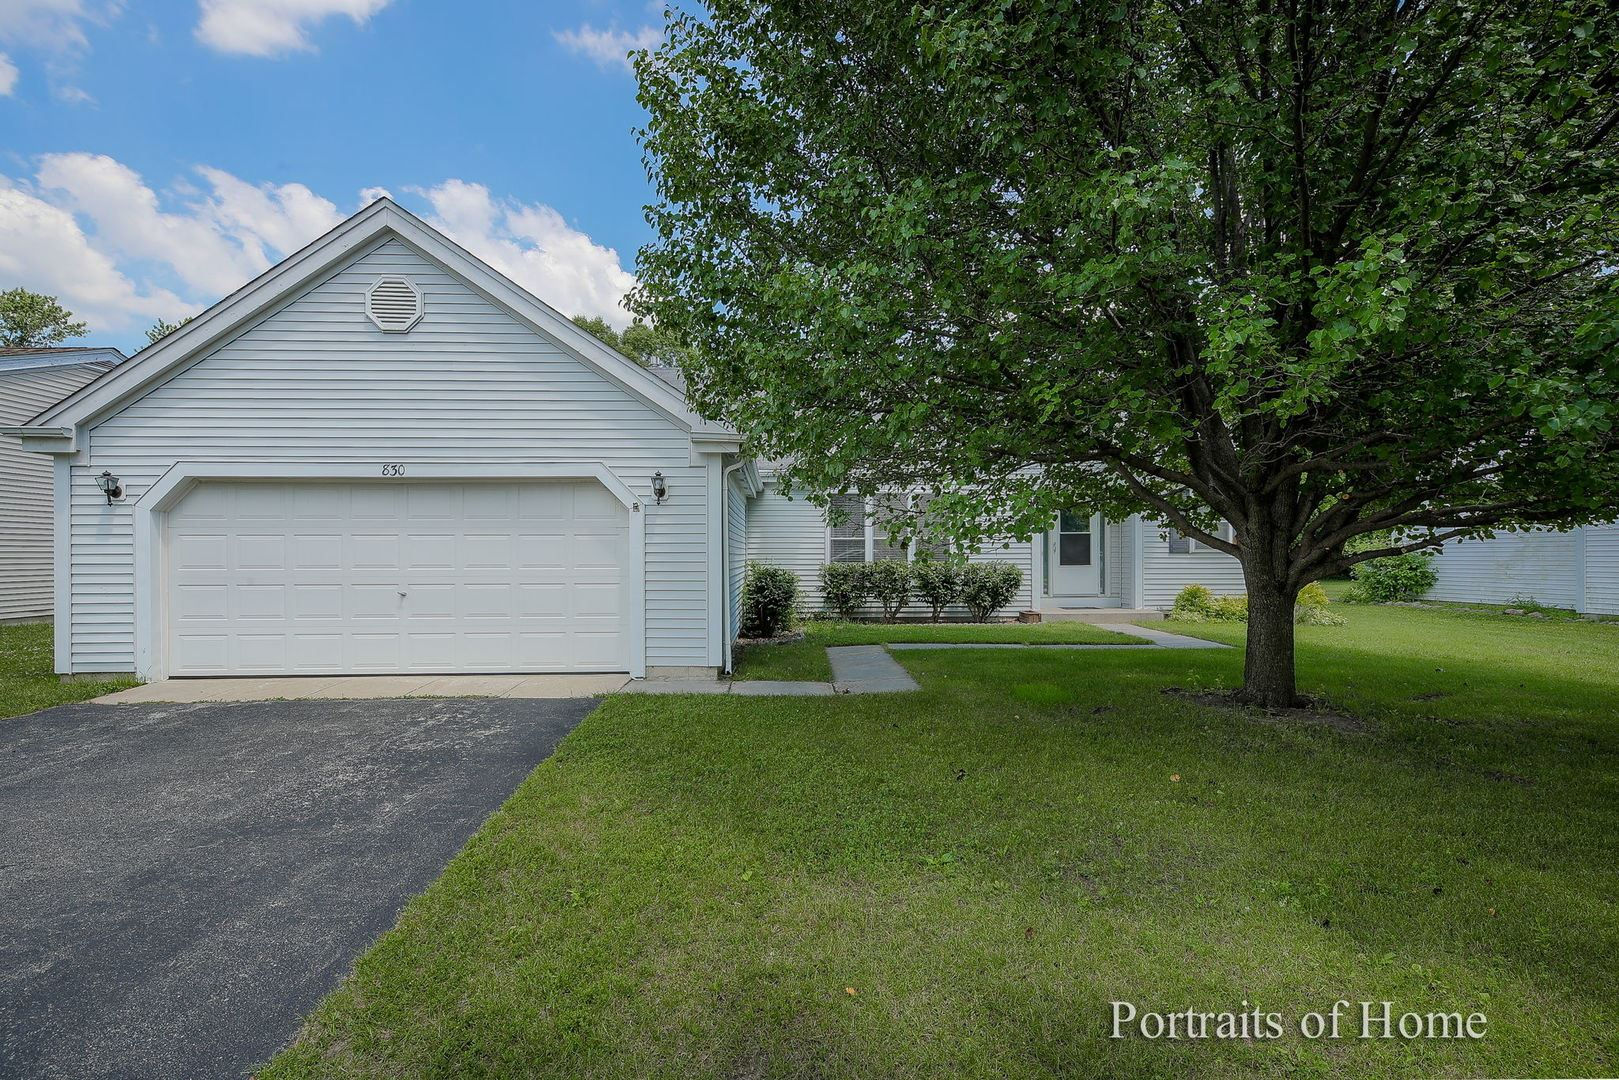 830 Woodbine Lane, Marengo, IL 60152 - #: 10769664